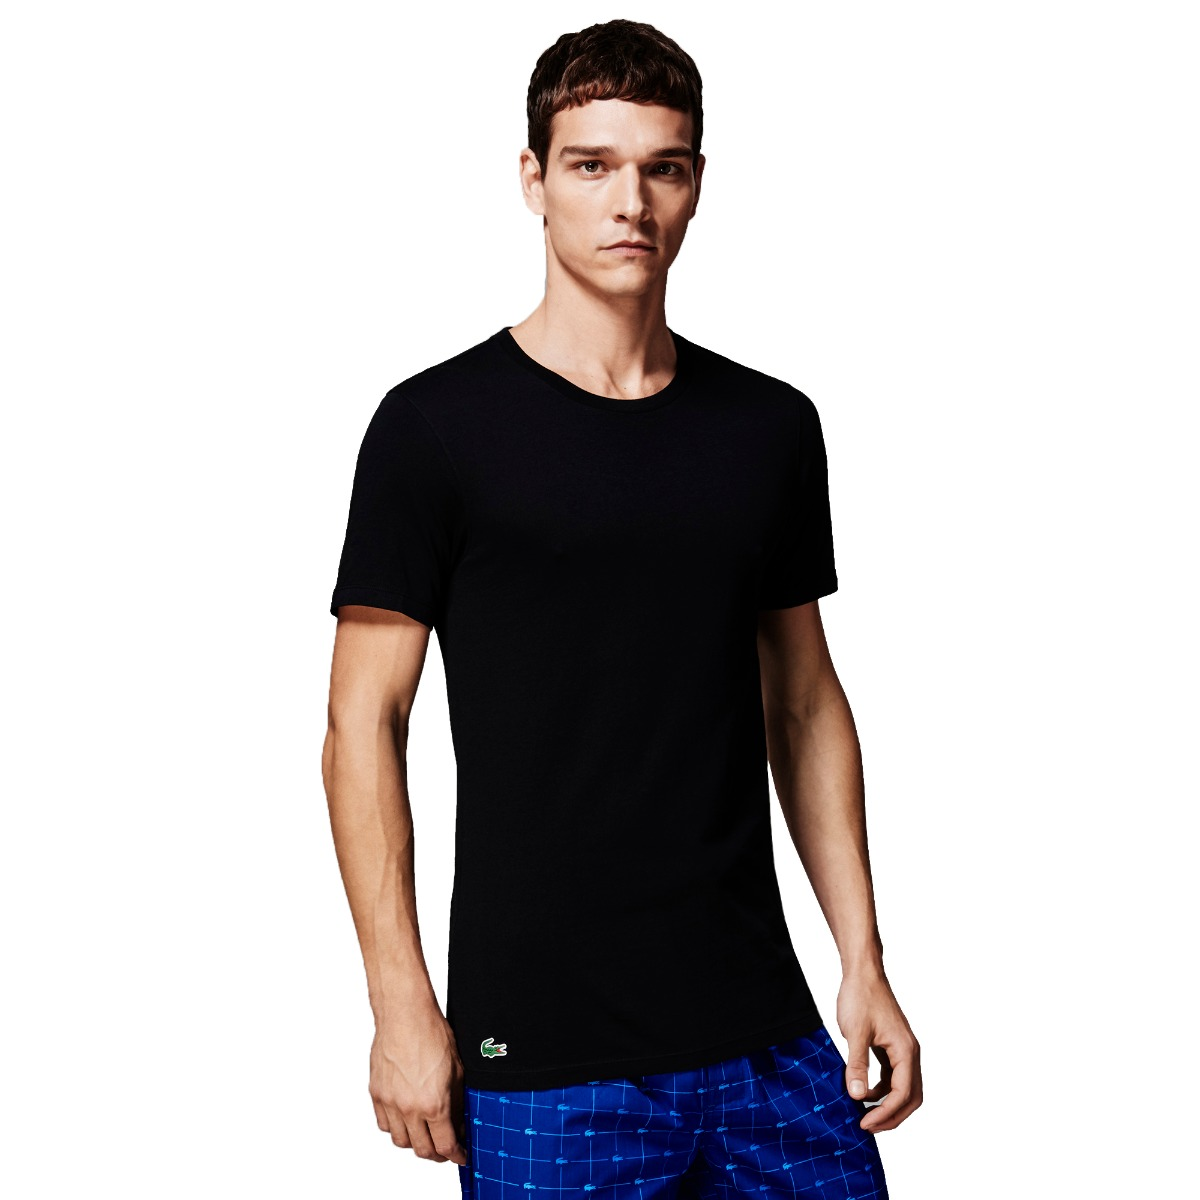 entire collection quality first harmonious colors Details about Lacoste NEW Men's 3 Pack Slim Fit Crew Neck T-Shirts - Black  BNWT